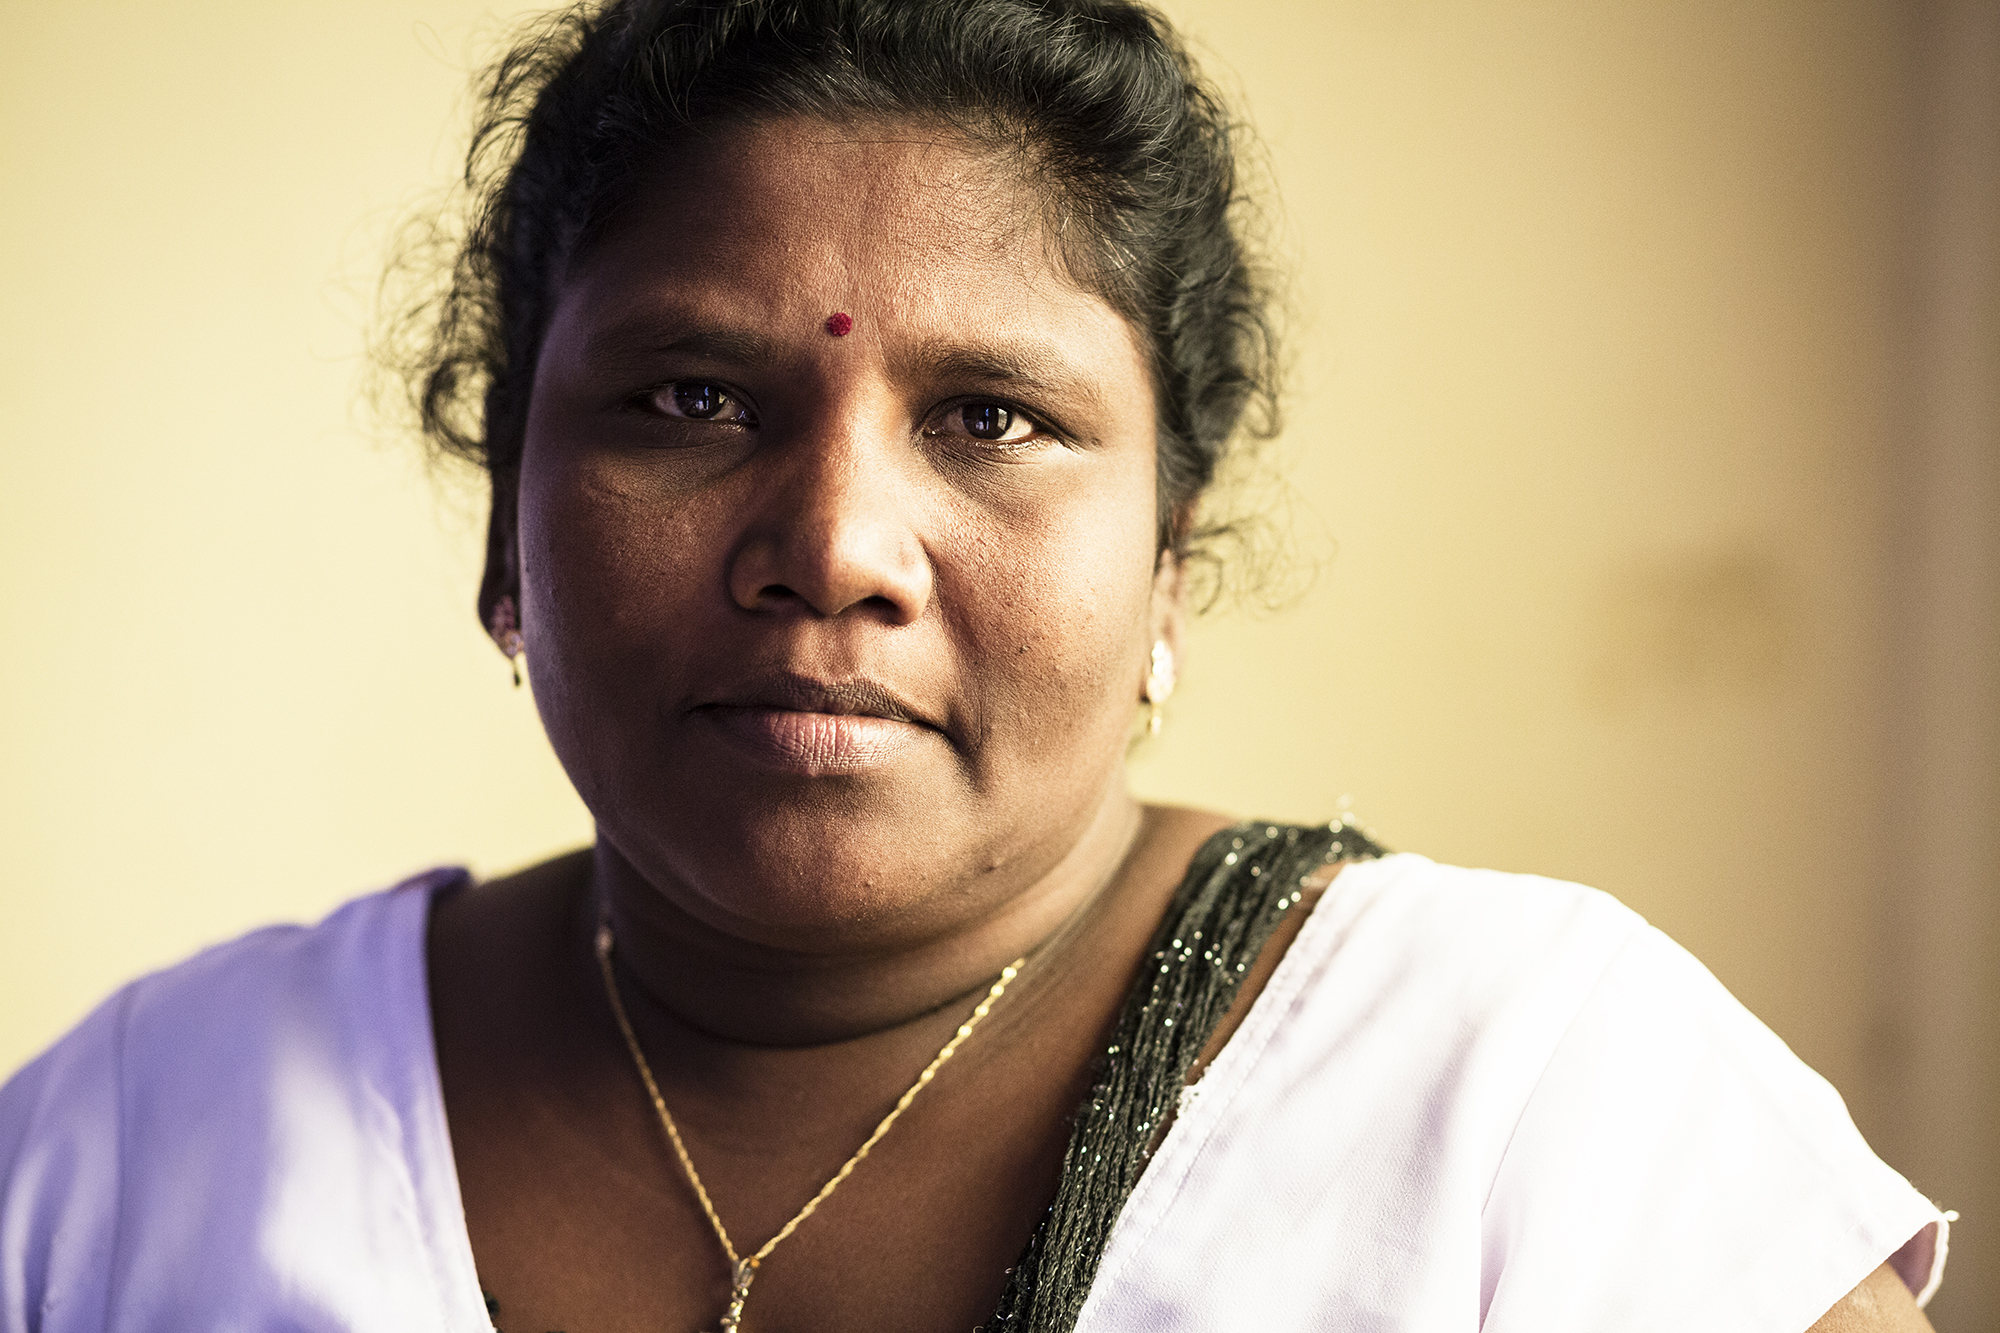 """Mariaselvi, 42. Mariaselvi's two brothers were allegedly detained by the Sri Lankan army in 1995 and 1998. She has not seen either of them since. She keeps her brother Robert's passport with her, in case he is found.  """"He had just gotten himself one to leave the country. He was supposed to travel to France to seek asylum, but the army caught him first."""""""